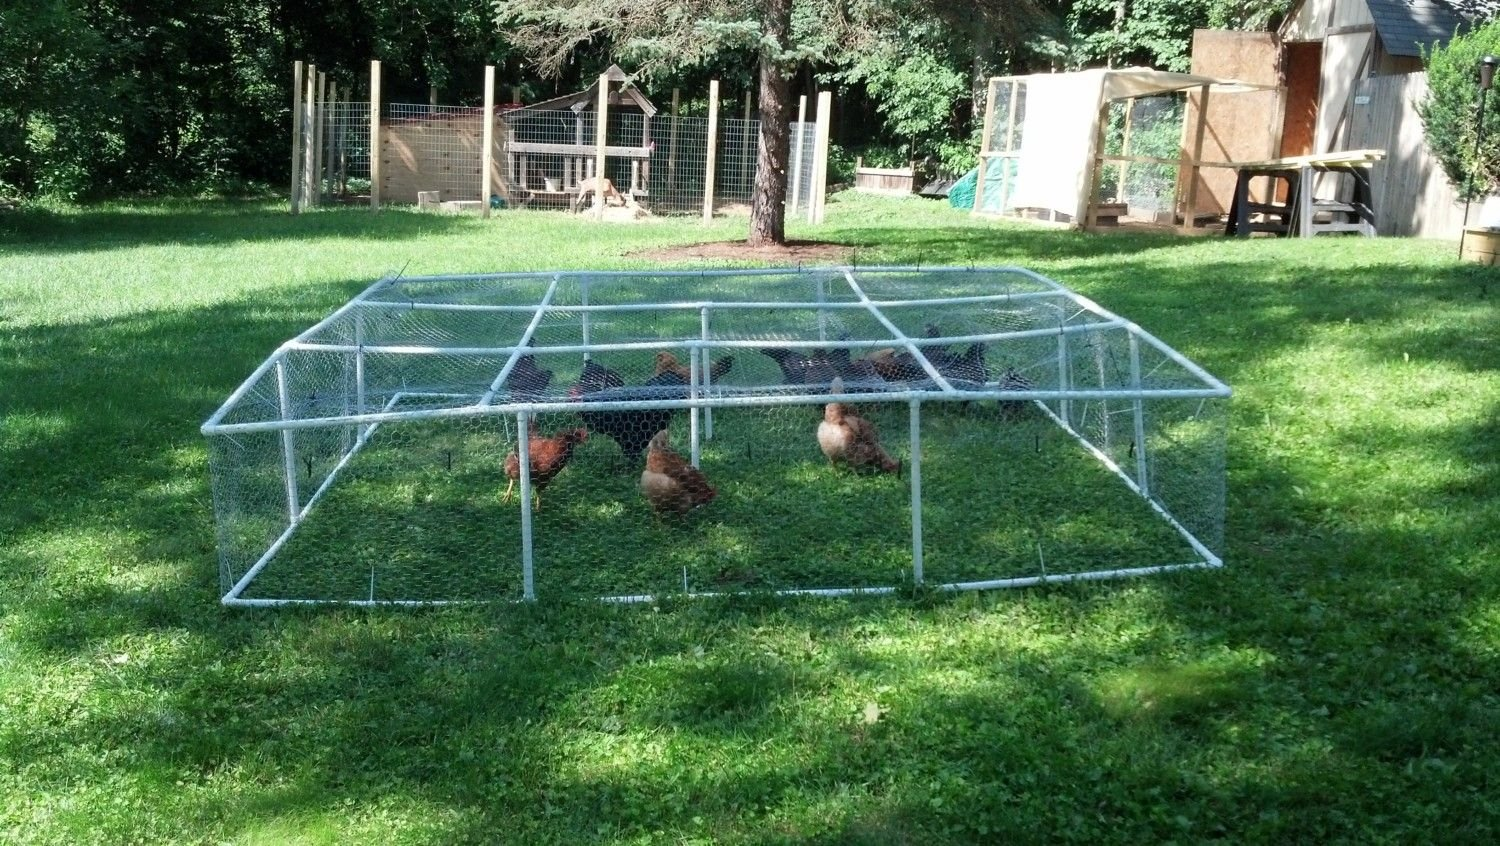 ... NEWS Has Offered Several DIY Chicken Coop Plans, Particularly Designs  For Portable Chicken Coops. If So, So You Should Moot Just About Important  Points ...